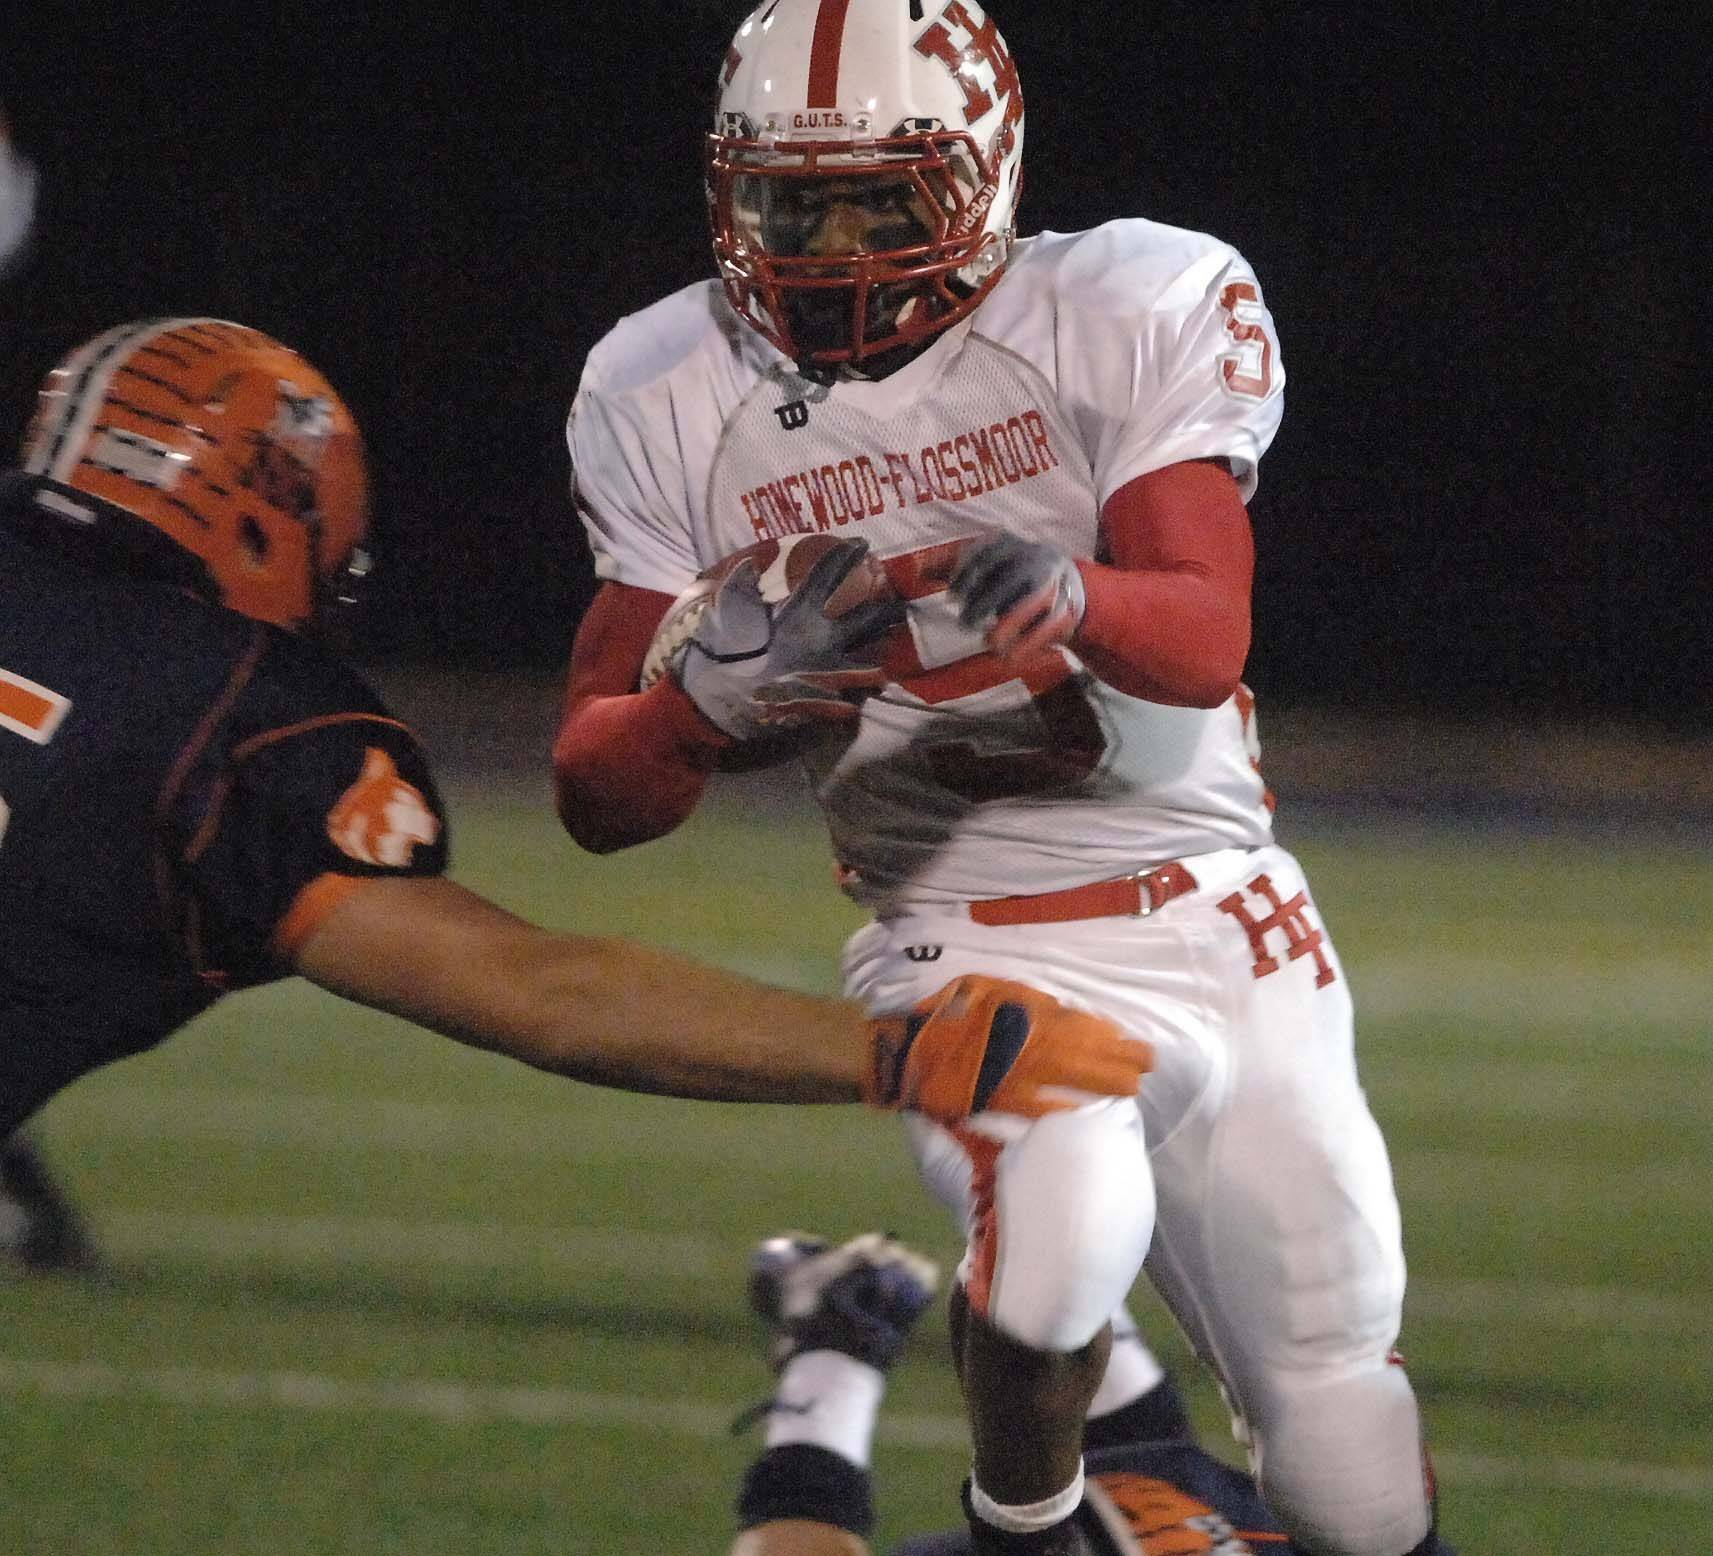 Malik Norman of Homewood-Flossmoor runs the ball .